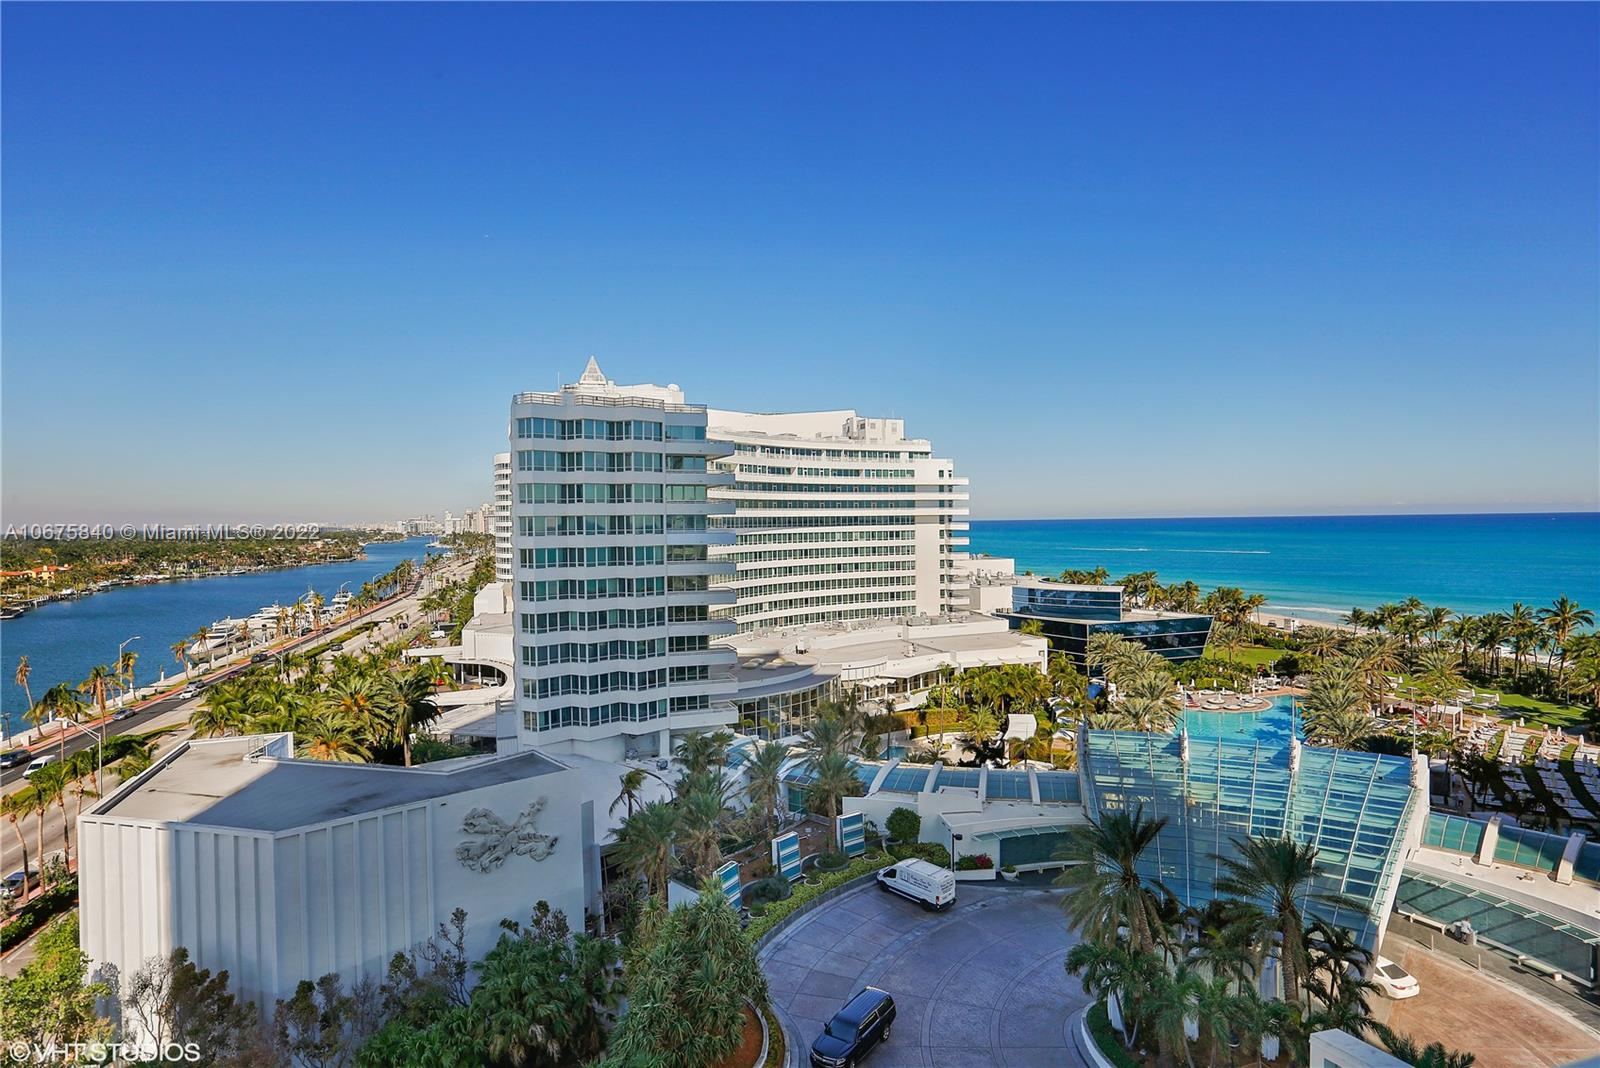 Beautiful Jr Suite w/ocean, bay & city views at Fontainebleau II. Enjoy full service, vacation-style living in a furnished turnkey unit with ample closet space and balcony. This unit comfortably sleeps four with a king bed, living area with sleeper sofa and kitchenette. Enroll in hotel rental program & receive income while away! The Fontainebleau Resort offers luxury amenities on 22 oceanfront acres including award-winning restaurants, LIV night club, Lapis spa & state-of-the-art fitness center. Maintenance includes: AC, local calls, electricity, valet + daily free breakfast in the owner's lounge.